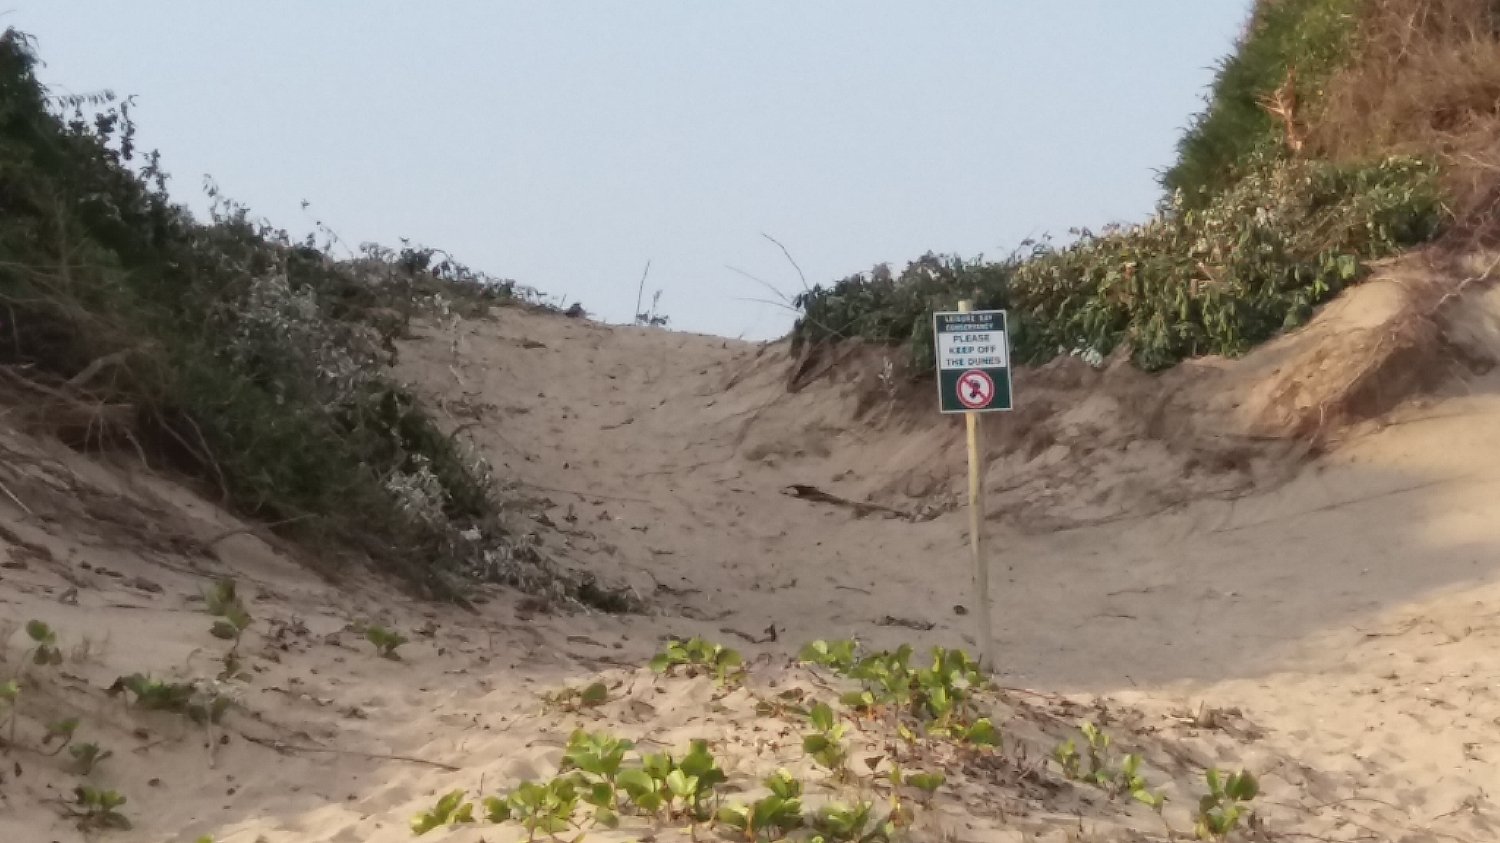 drakes-bay-north-dune-draft-maintenance-management-plan-